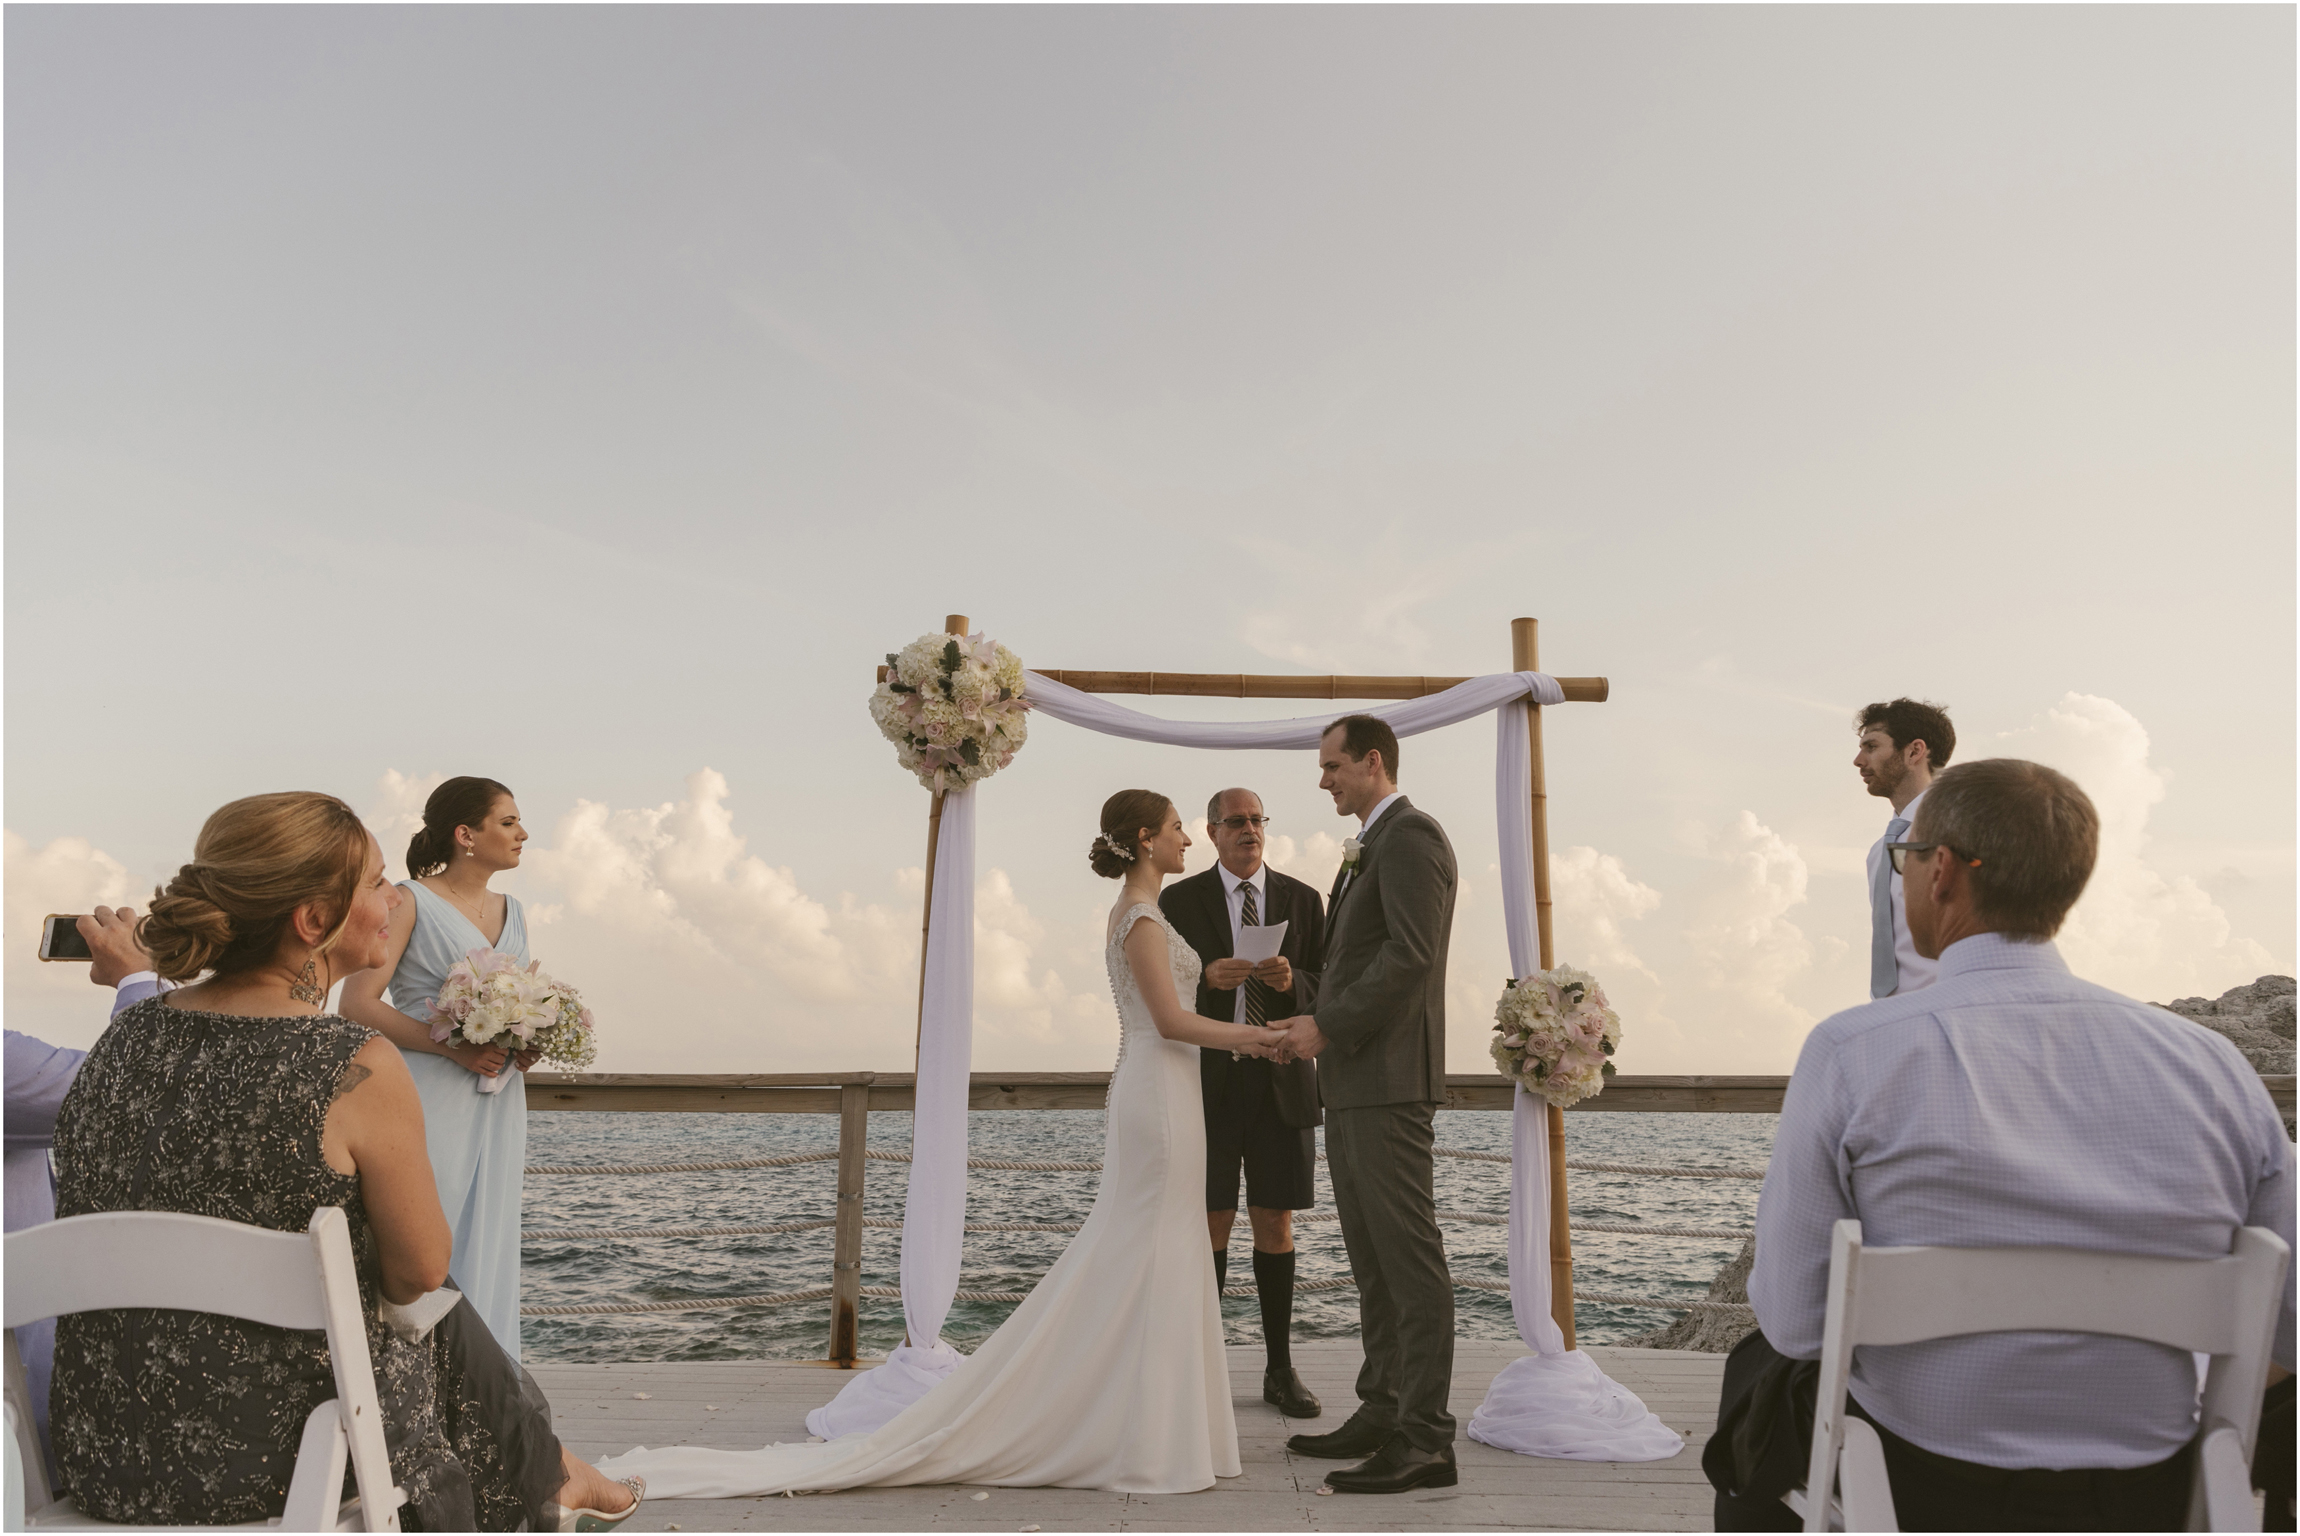 ©FianderFoto_Caribbean_Wedding_Photographer_The Reefs_Bermuda_Lauren_Erik_069.jpg